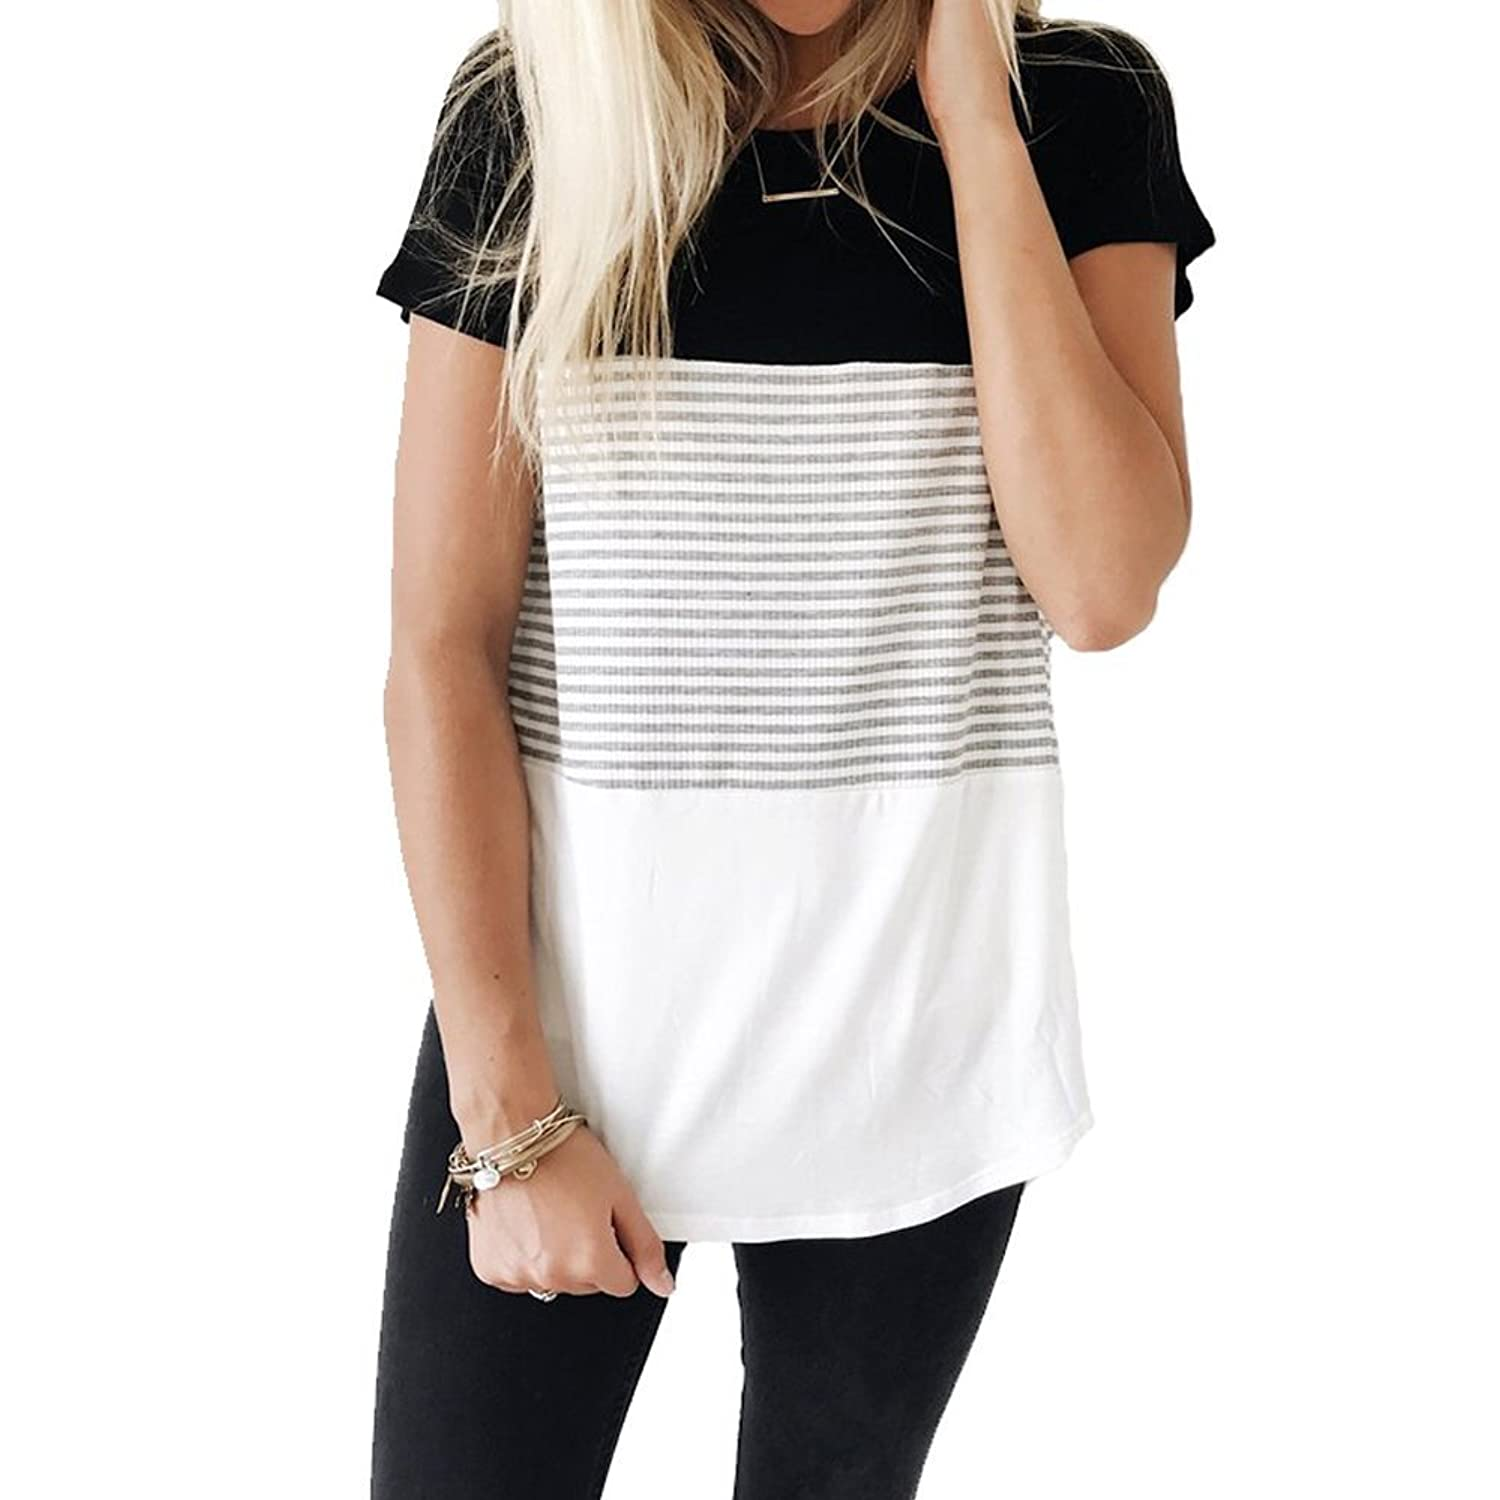 d1024b5f0df47 Top 10 wholesale Striped Garments - Chinabrands.com